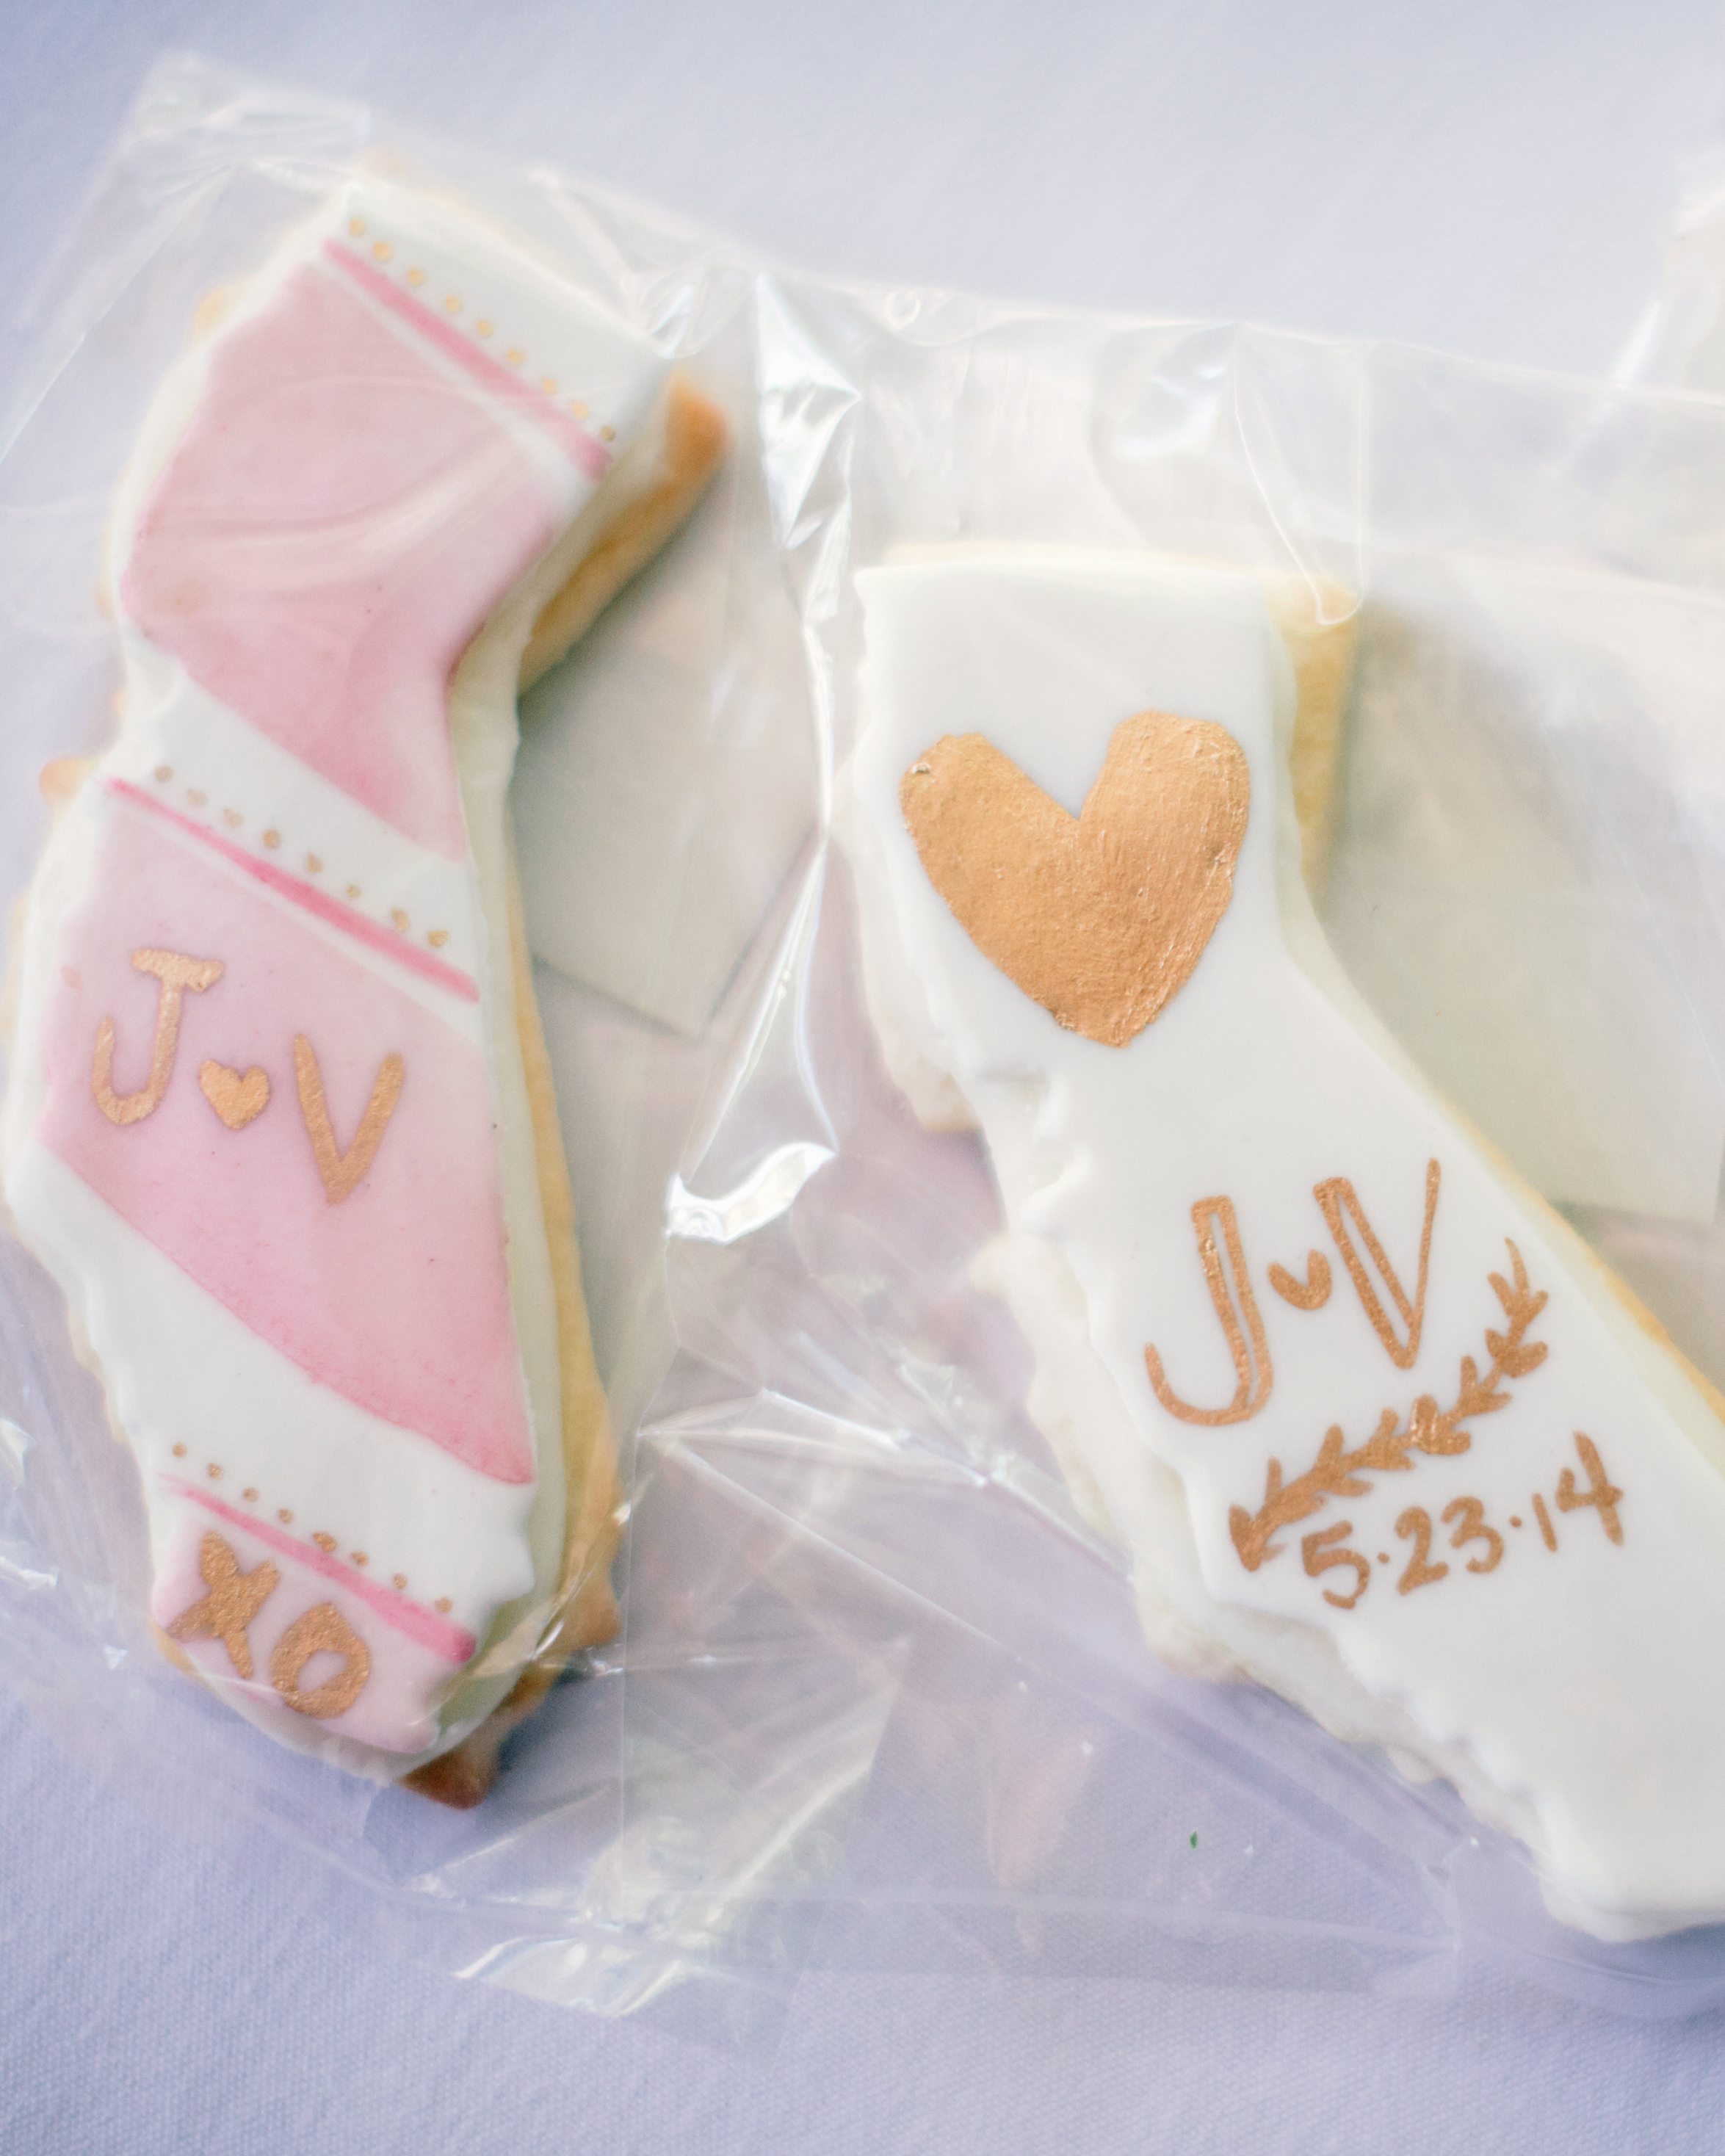 vanessa-joe-wedding-cookies-7956-s111736-1214.jpg